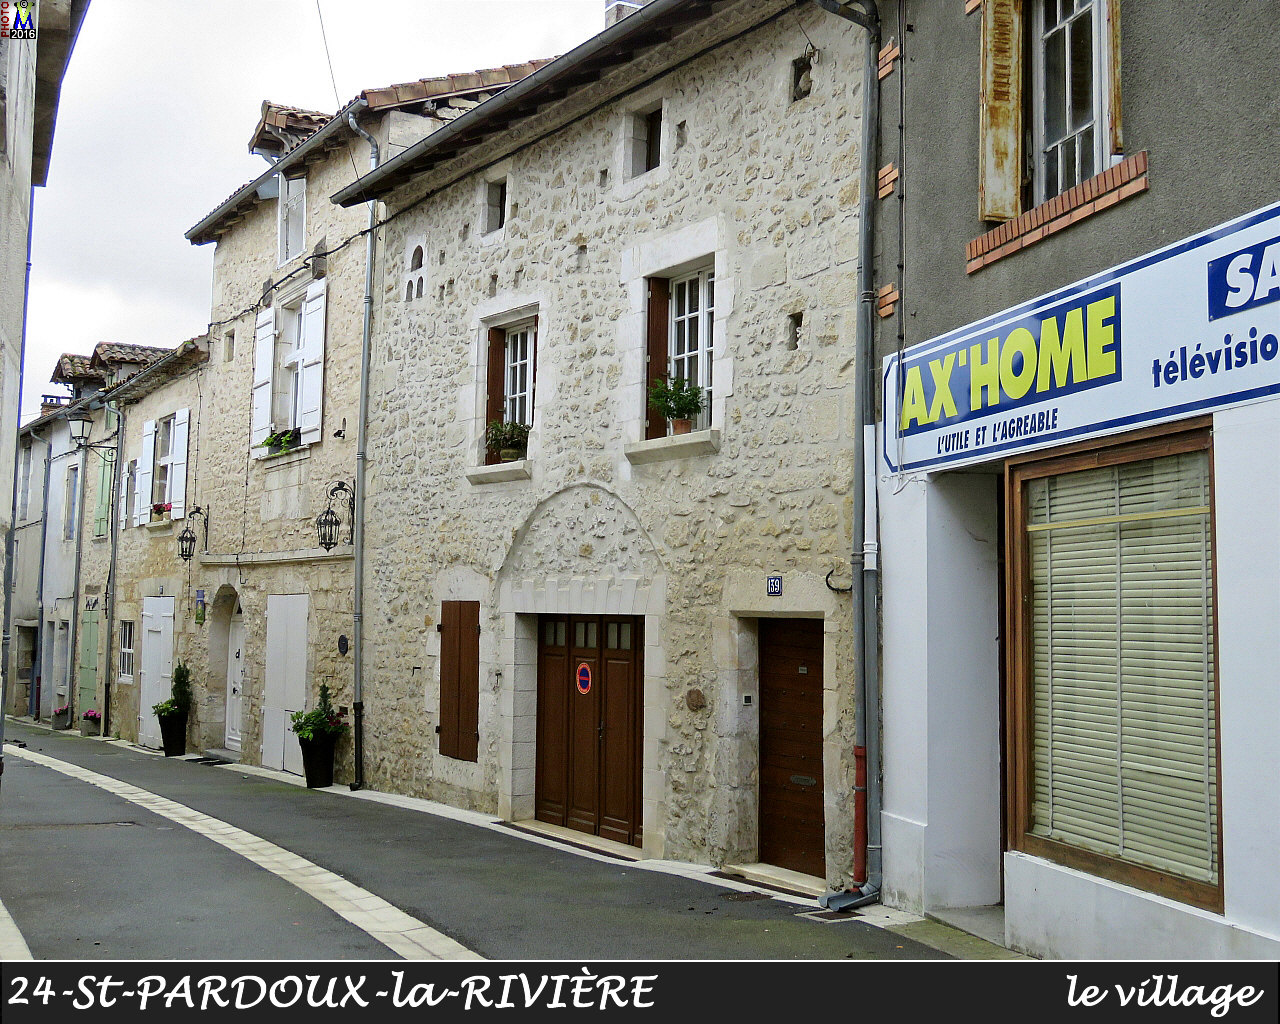 24StPARDOUX-LR_village_1020.jpg